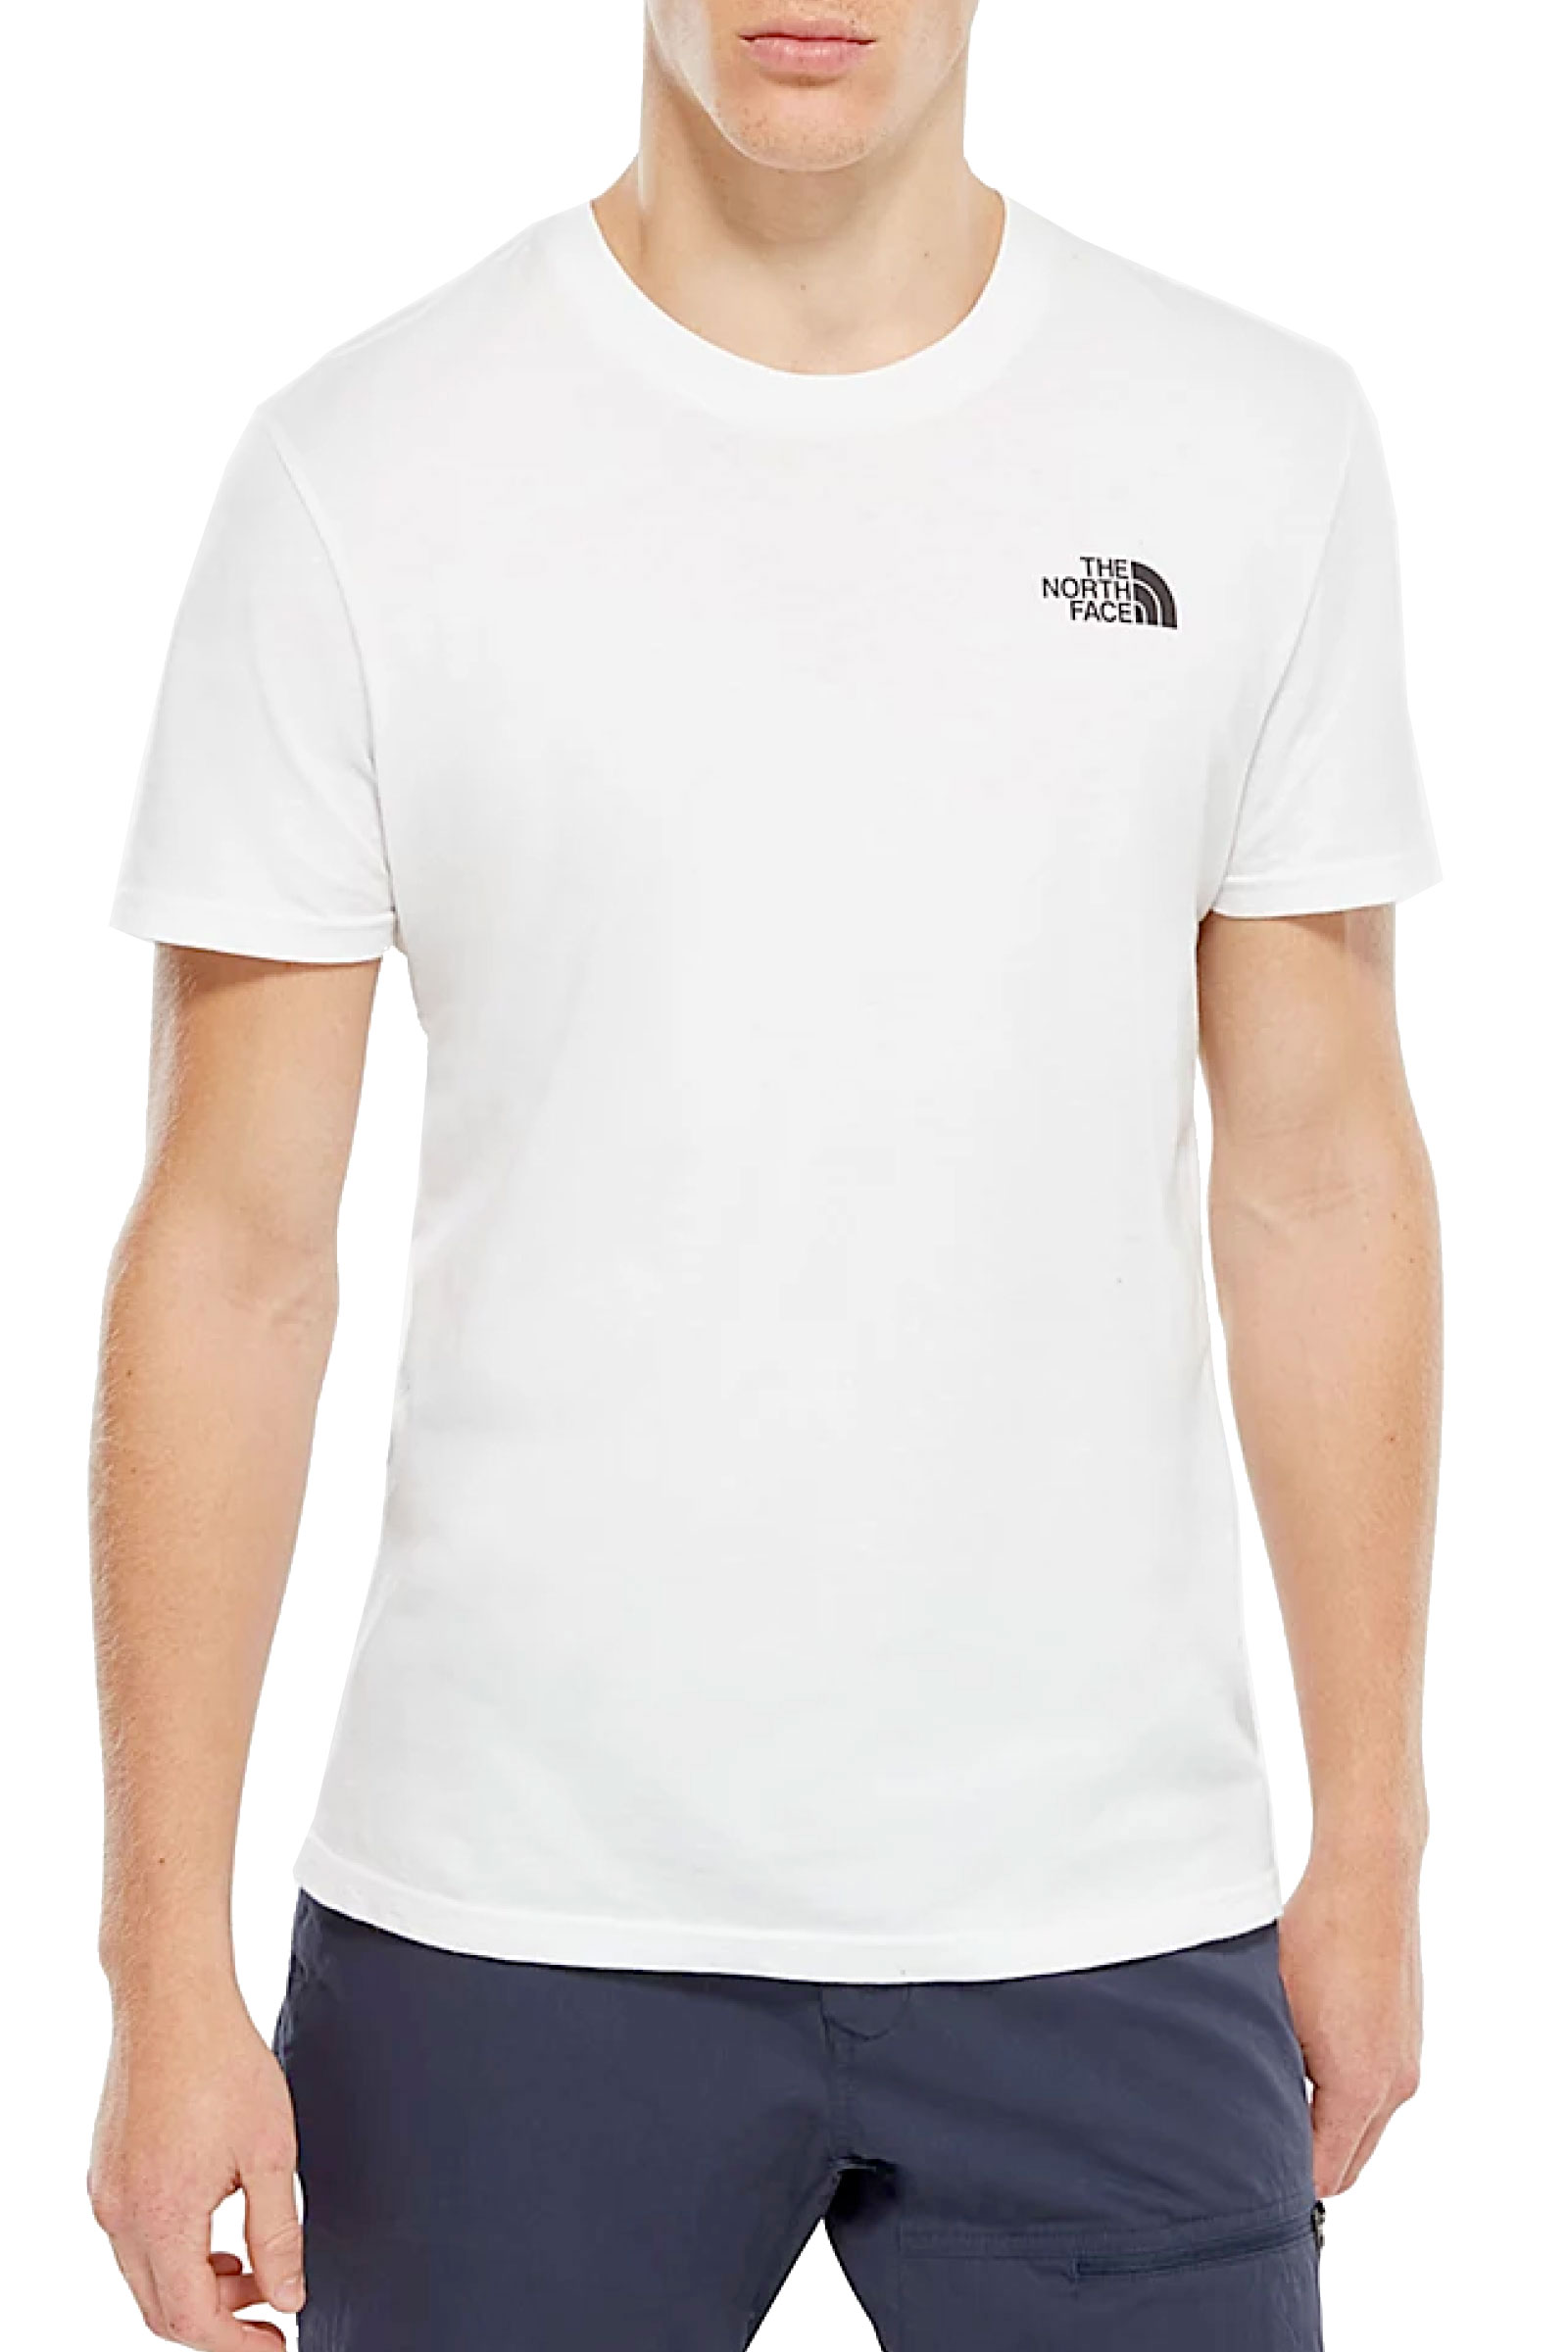 THE NORTH FACE   T-Shirt   NF0A2TX5FN4